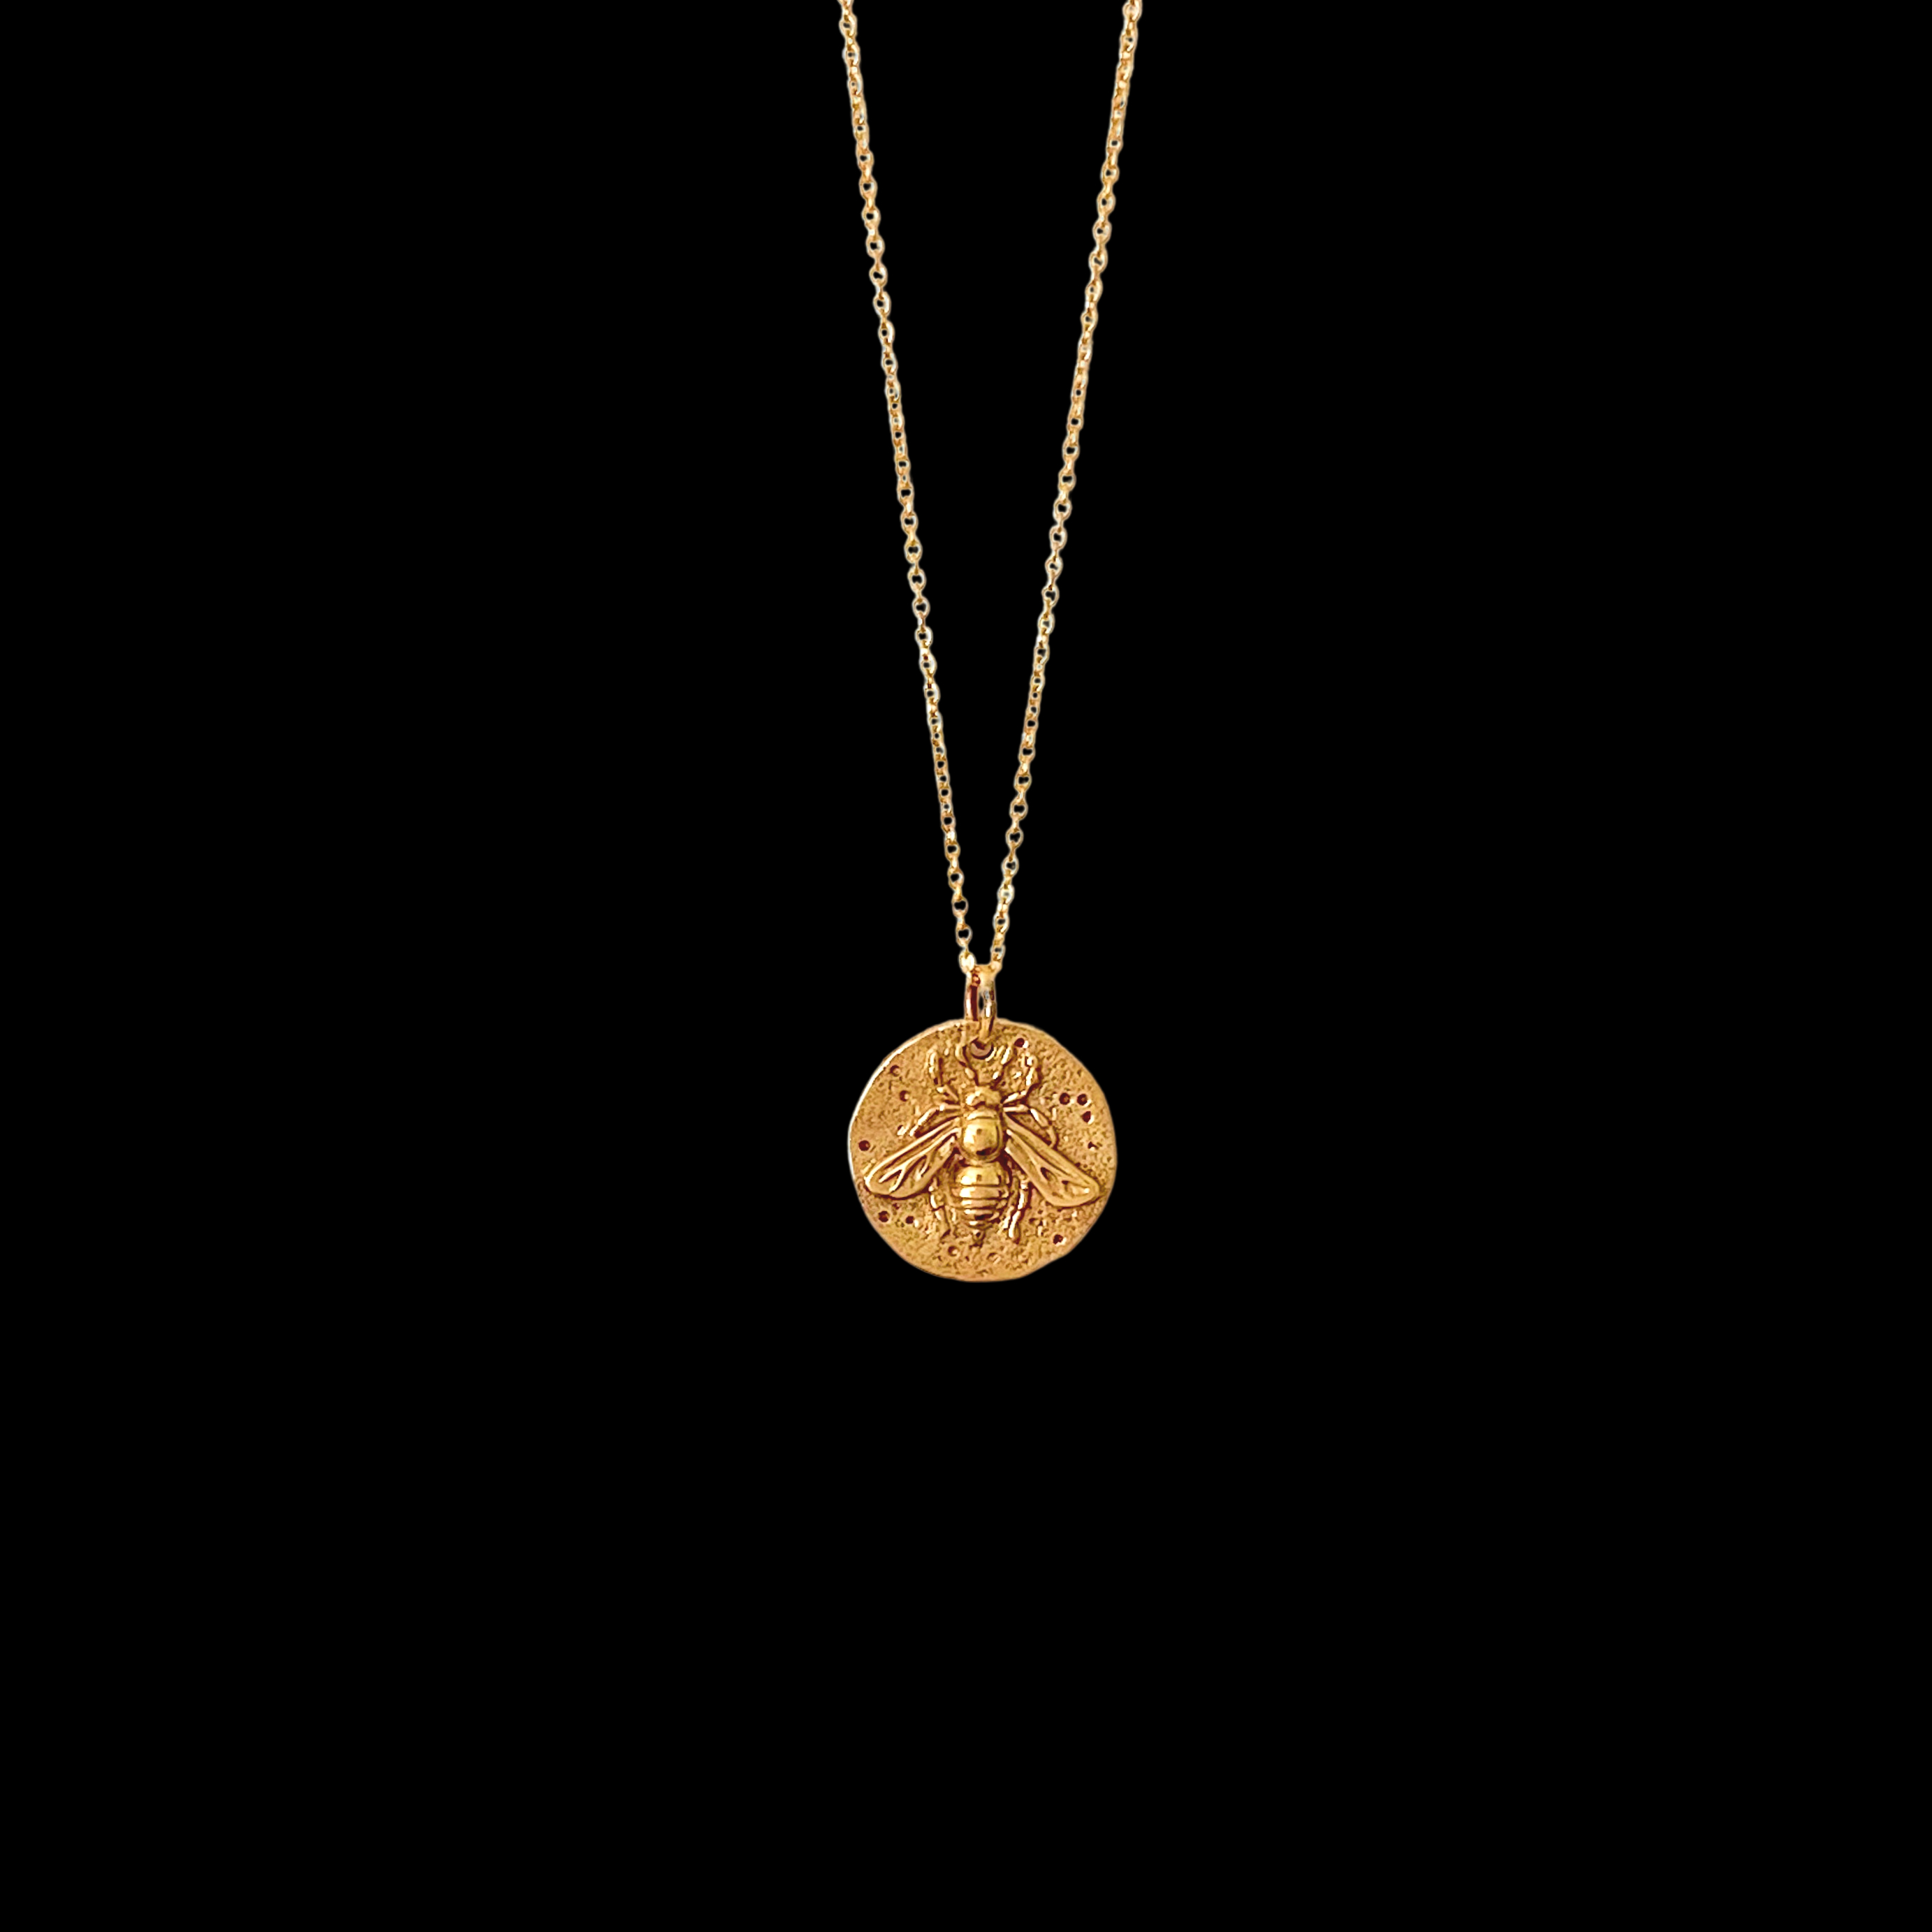 Image of Bee Coin Pendant Necklace